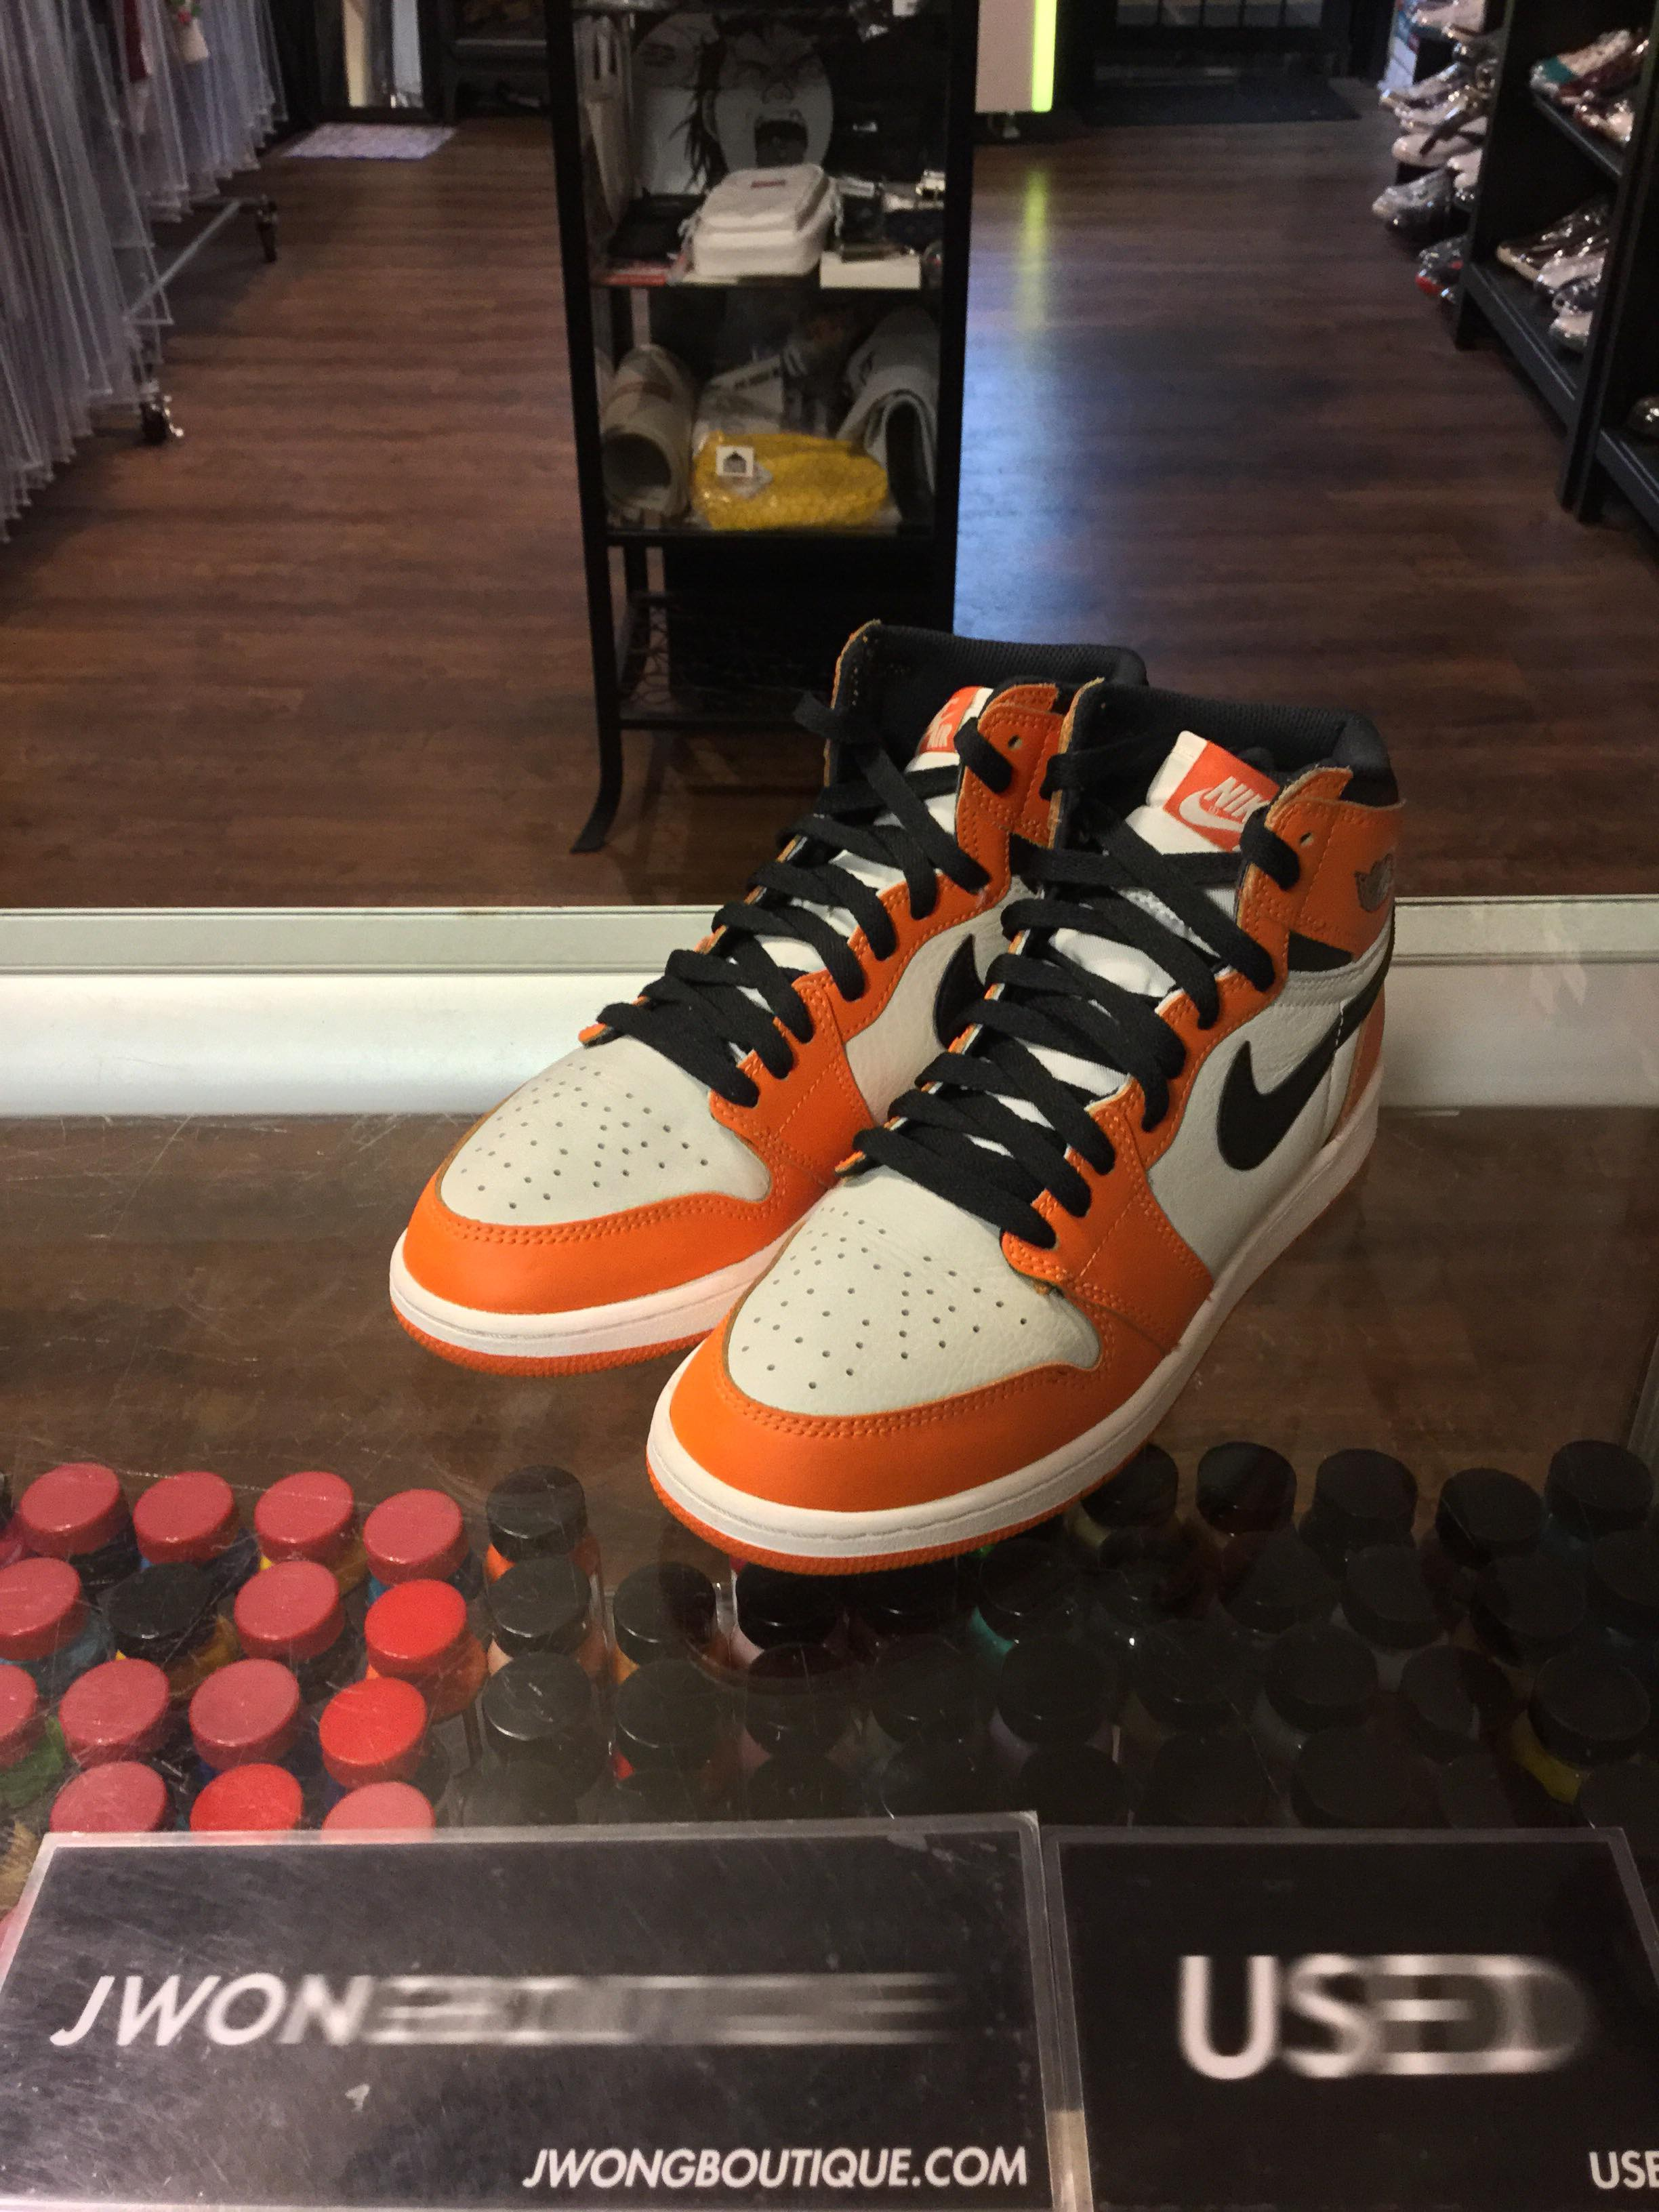 low priced c2551 fad53 2016 Nike Air Jordan I Reverse Shattered Backboard Youth